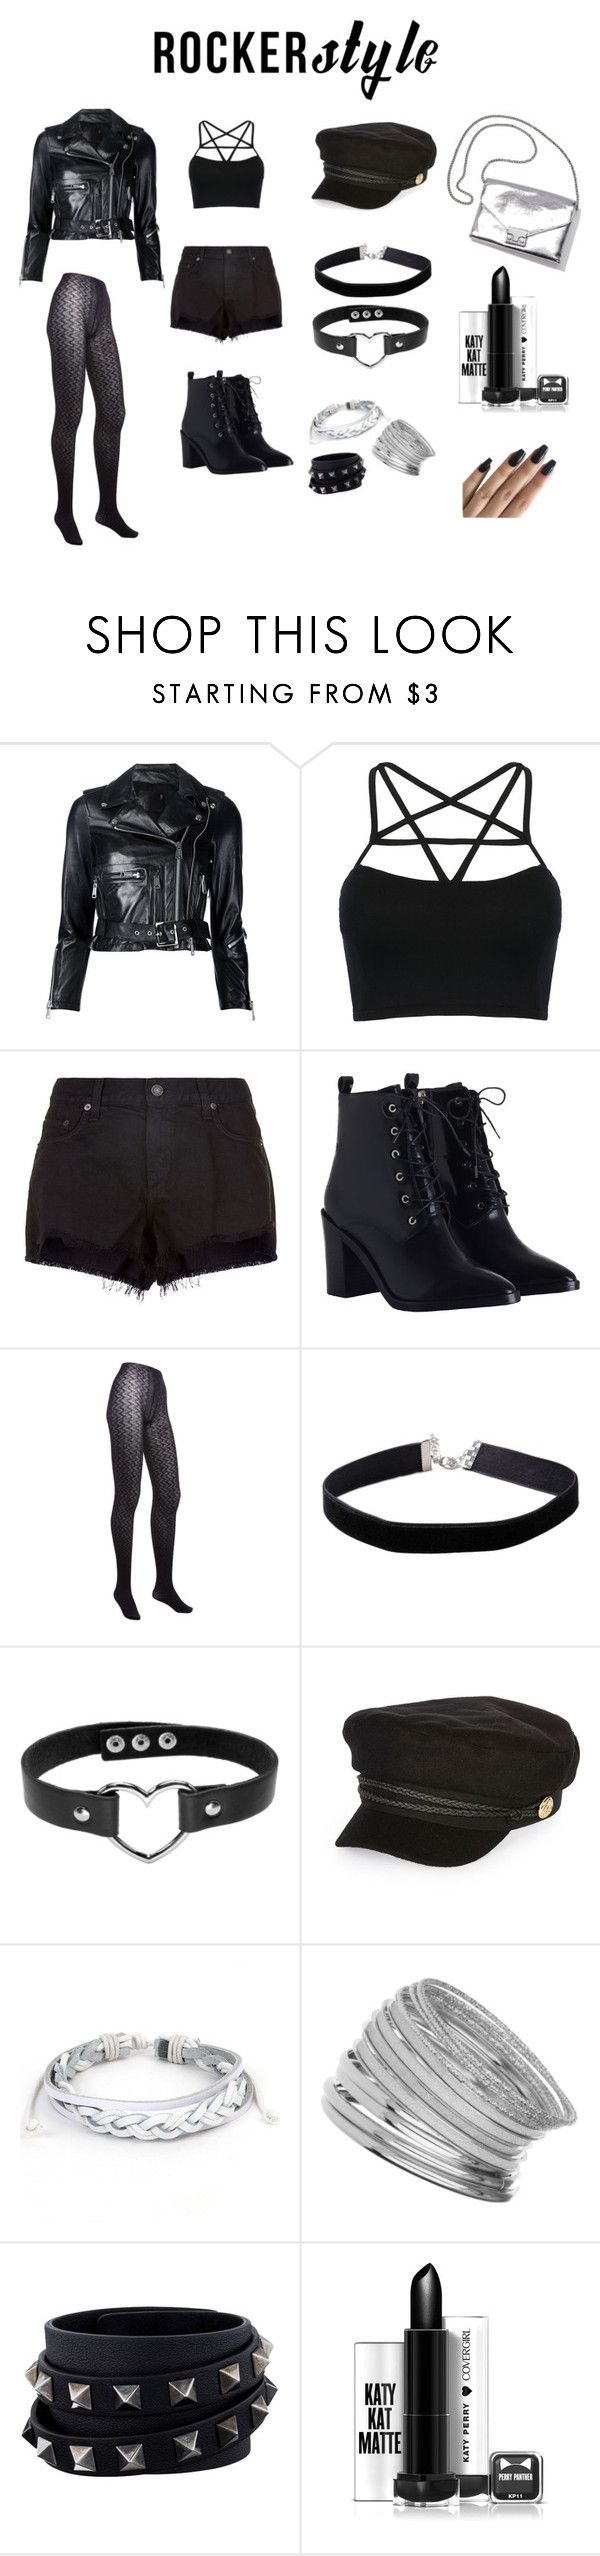 """I Wear Black"" by ferranong on Polyvore featuring R13, WithChic, rag & bone, Zimmermann, Emilio Cavallini, Miss Selfridge, River Island, West Coast Jewelry, Valentino and Loeffler Randall"